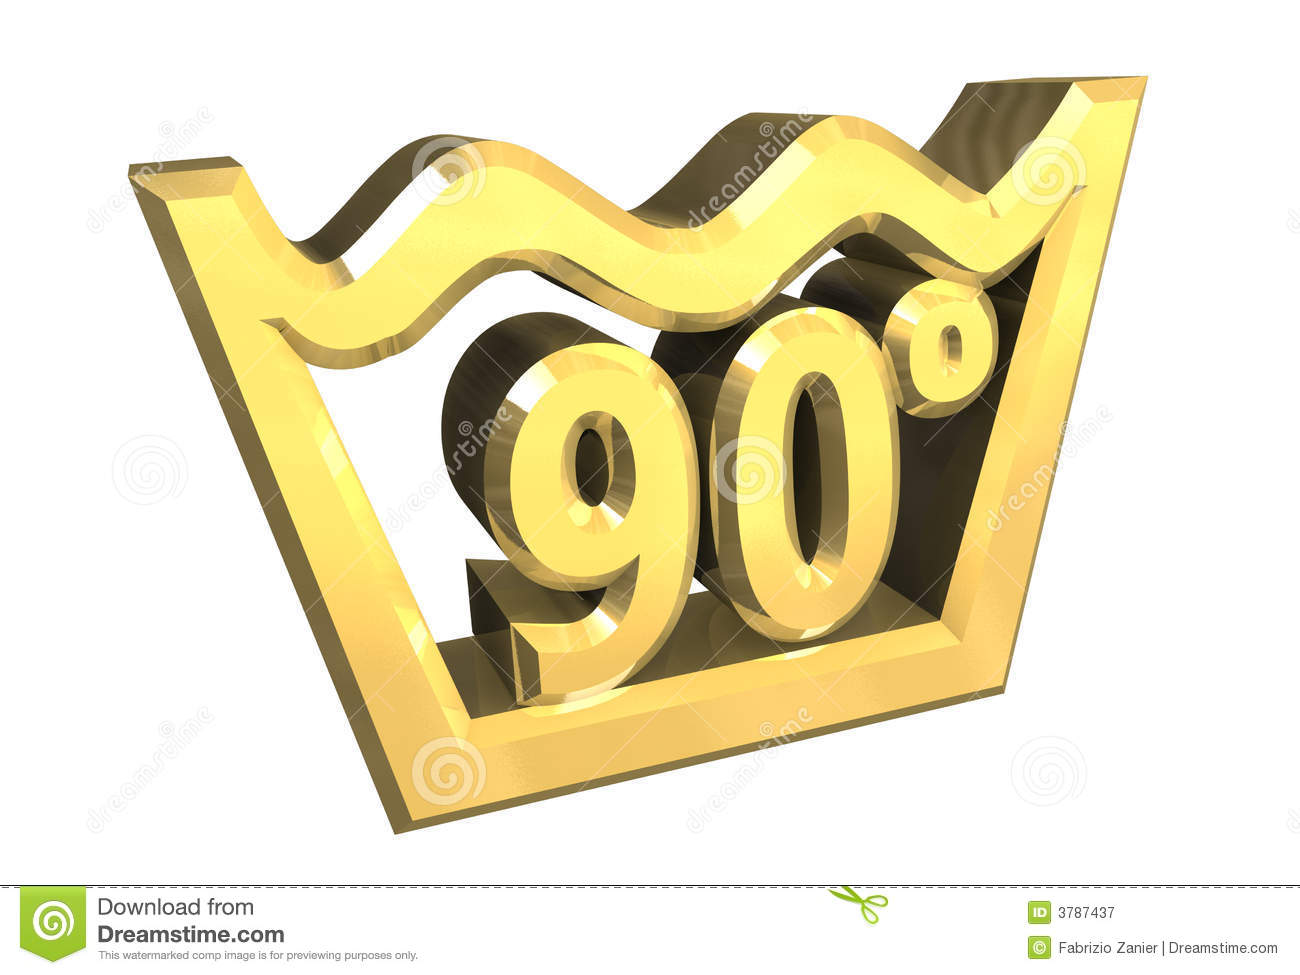 Washing 90 Degree Symbol In Gold Isolated 3d Stock Illustration